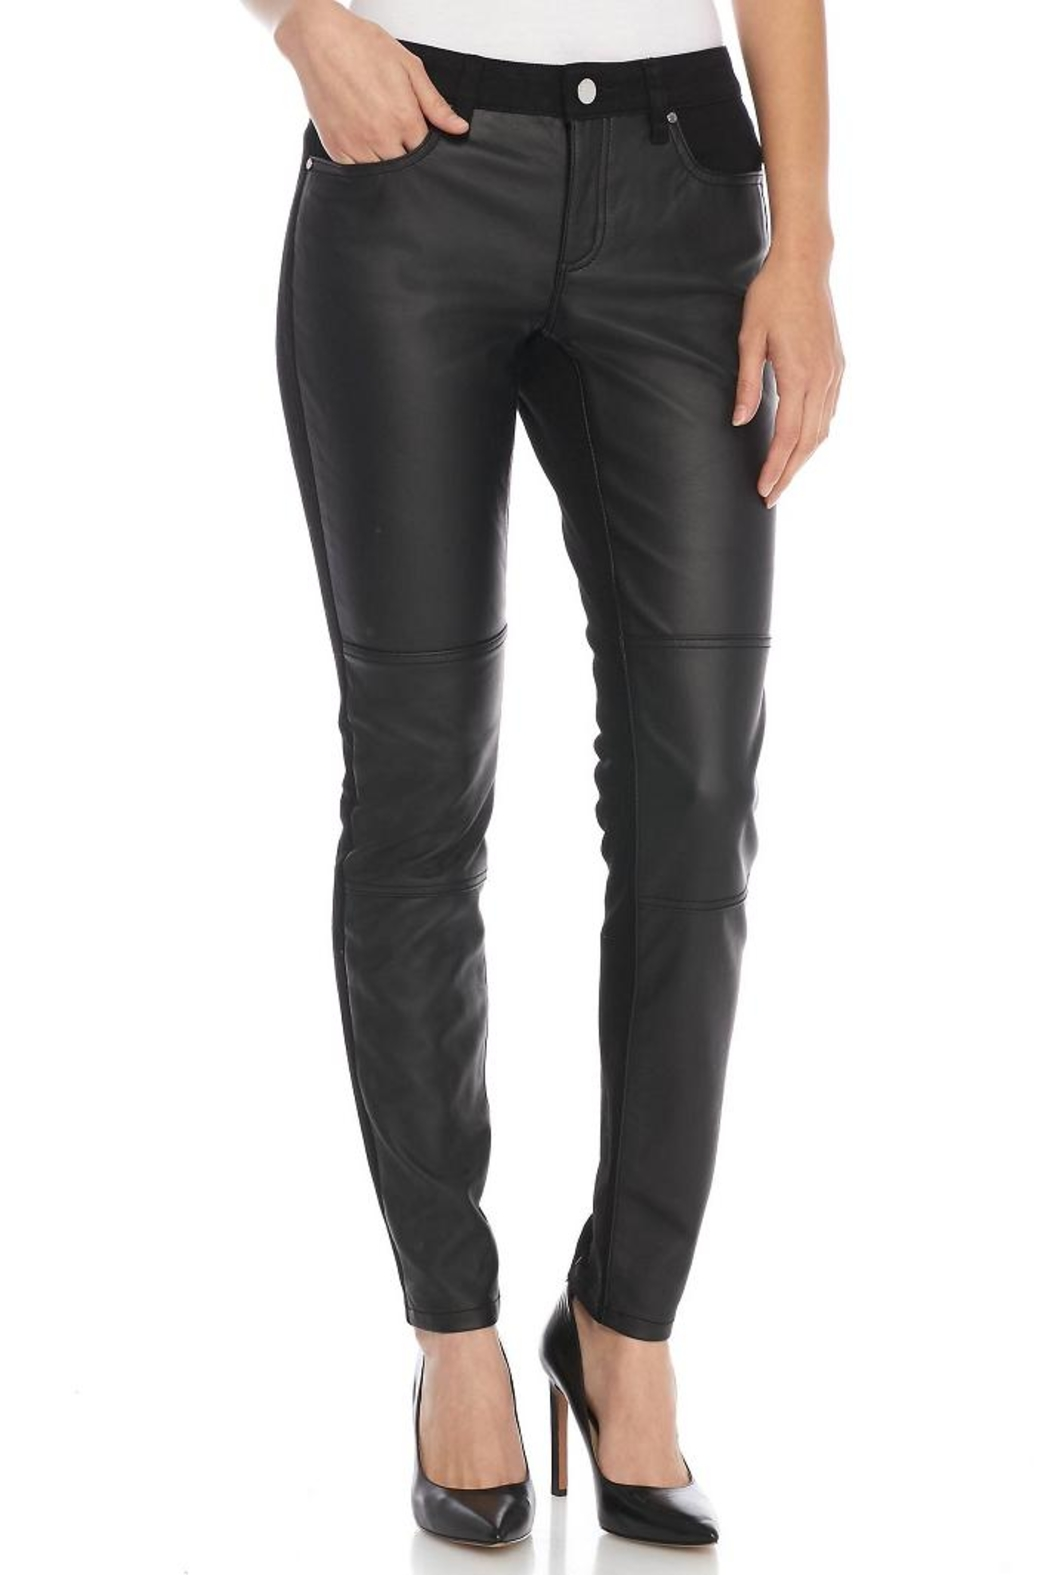 Michael Kors Faux Leather Skinny Denim - Main Image